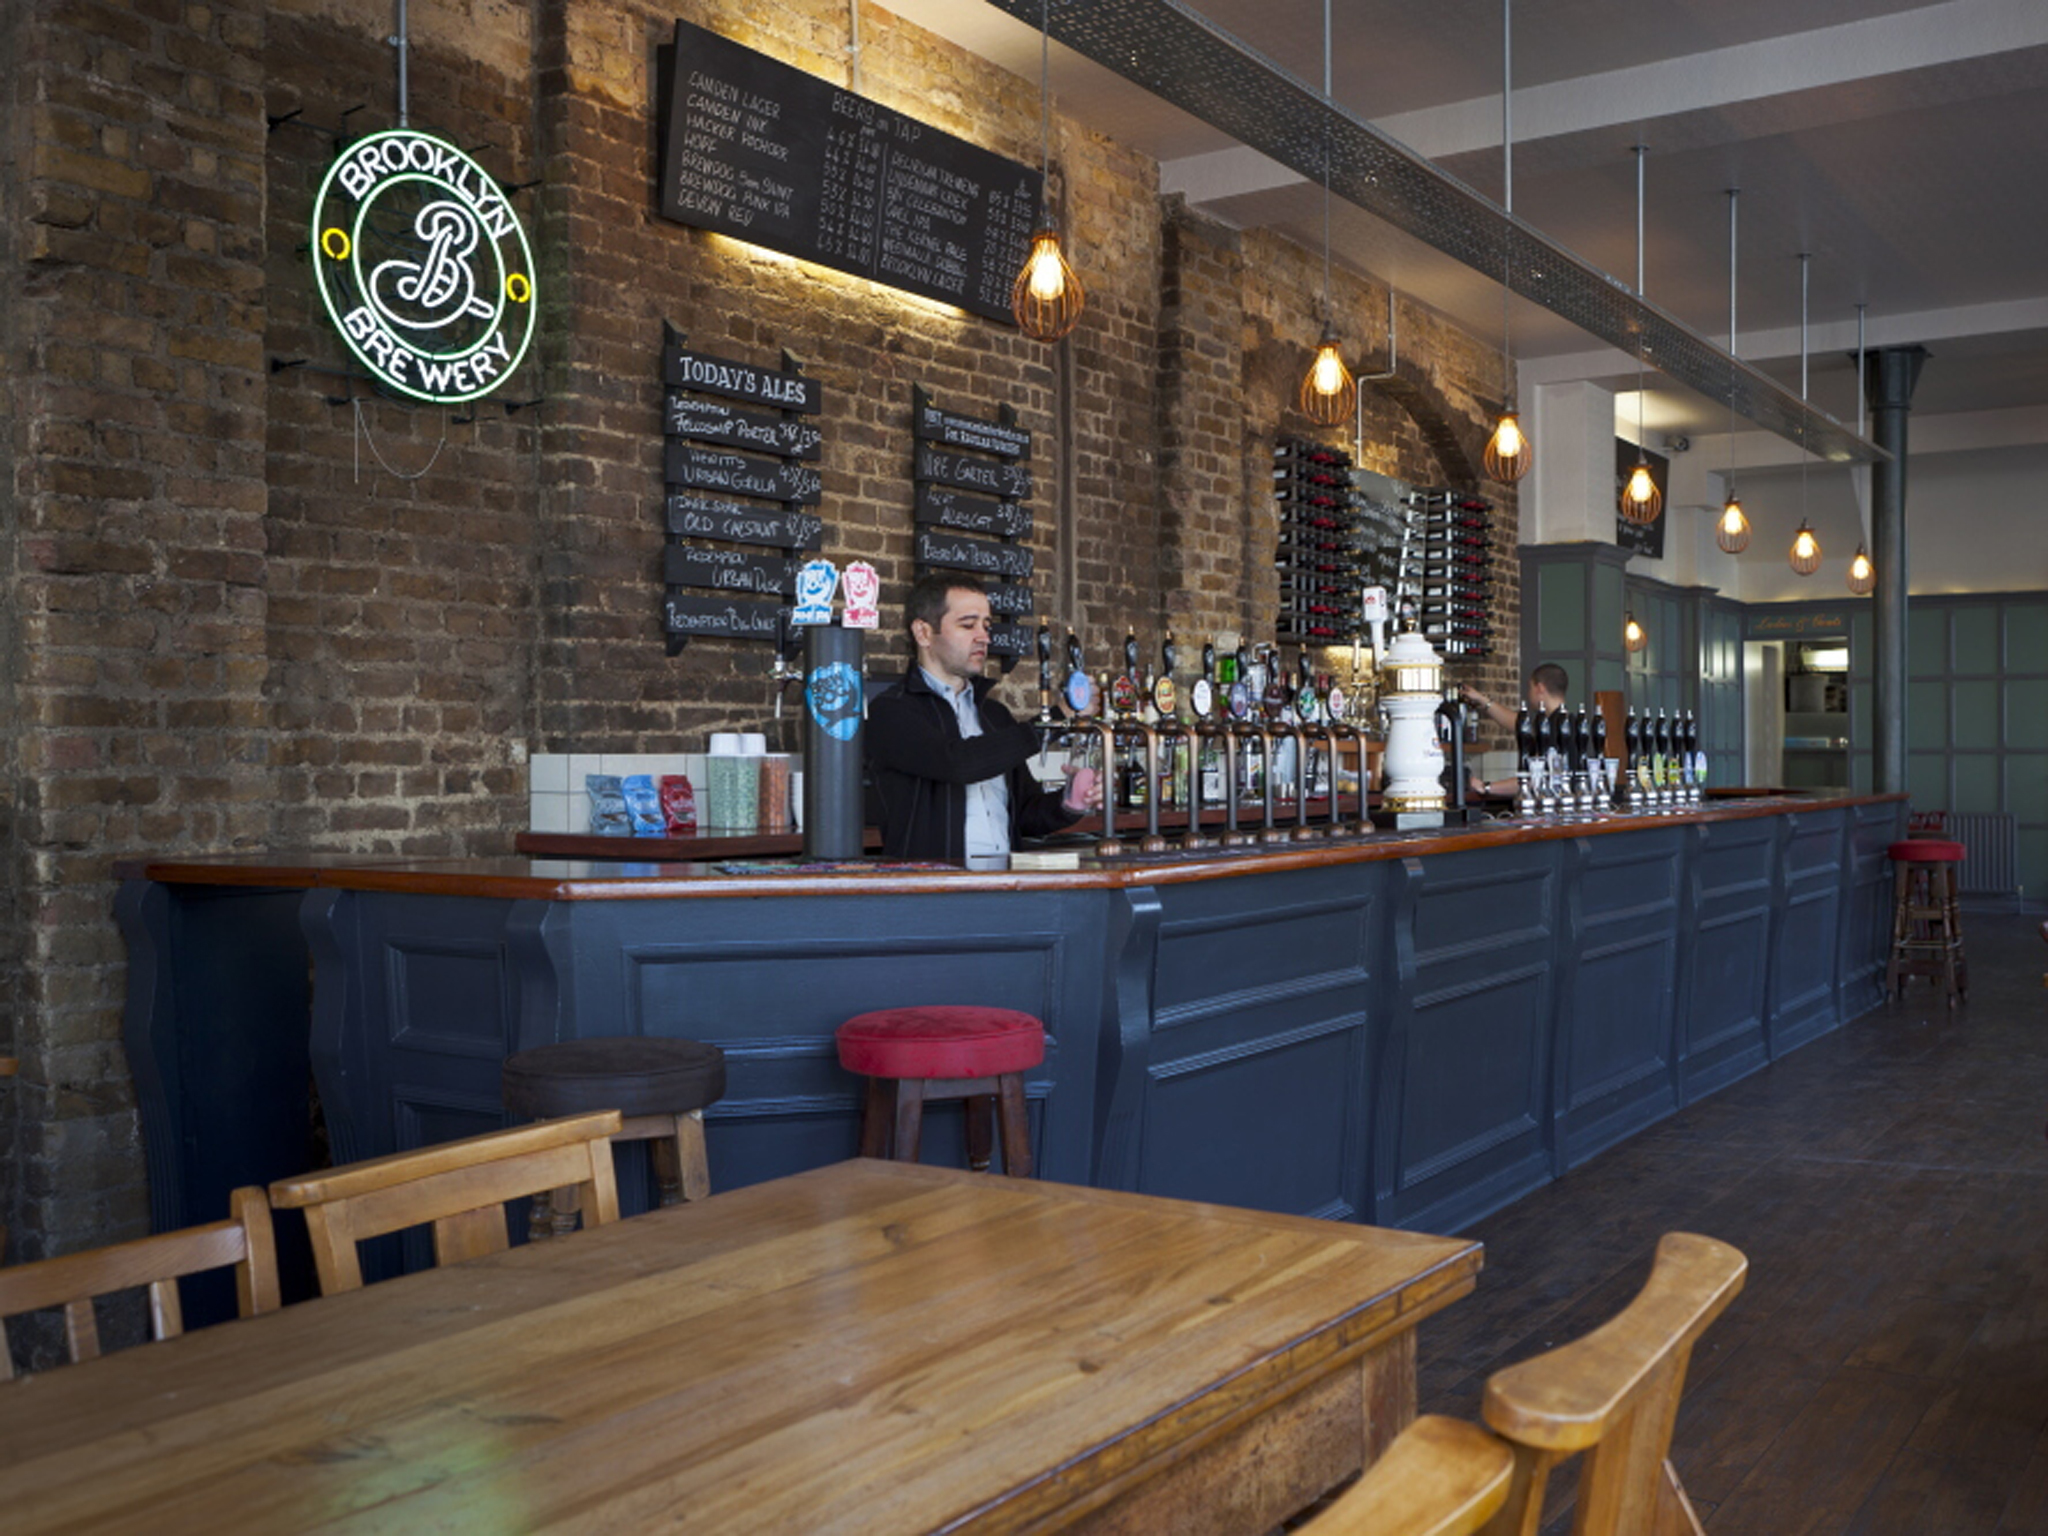 The 100 best bars and pubs in London - Crown & Anchor, Brixton